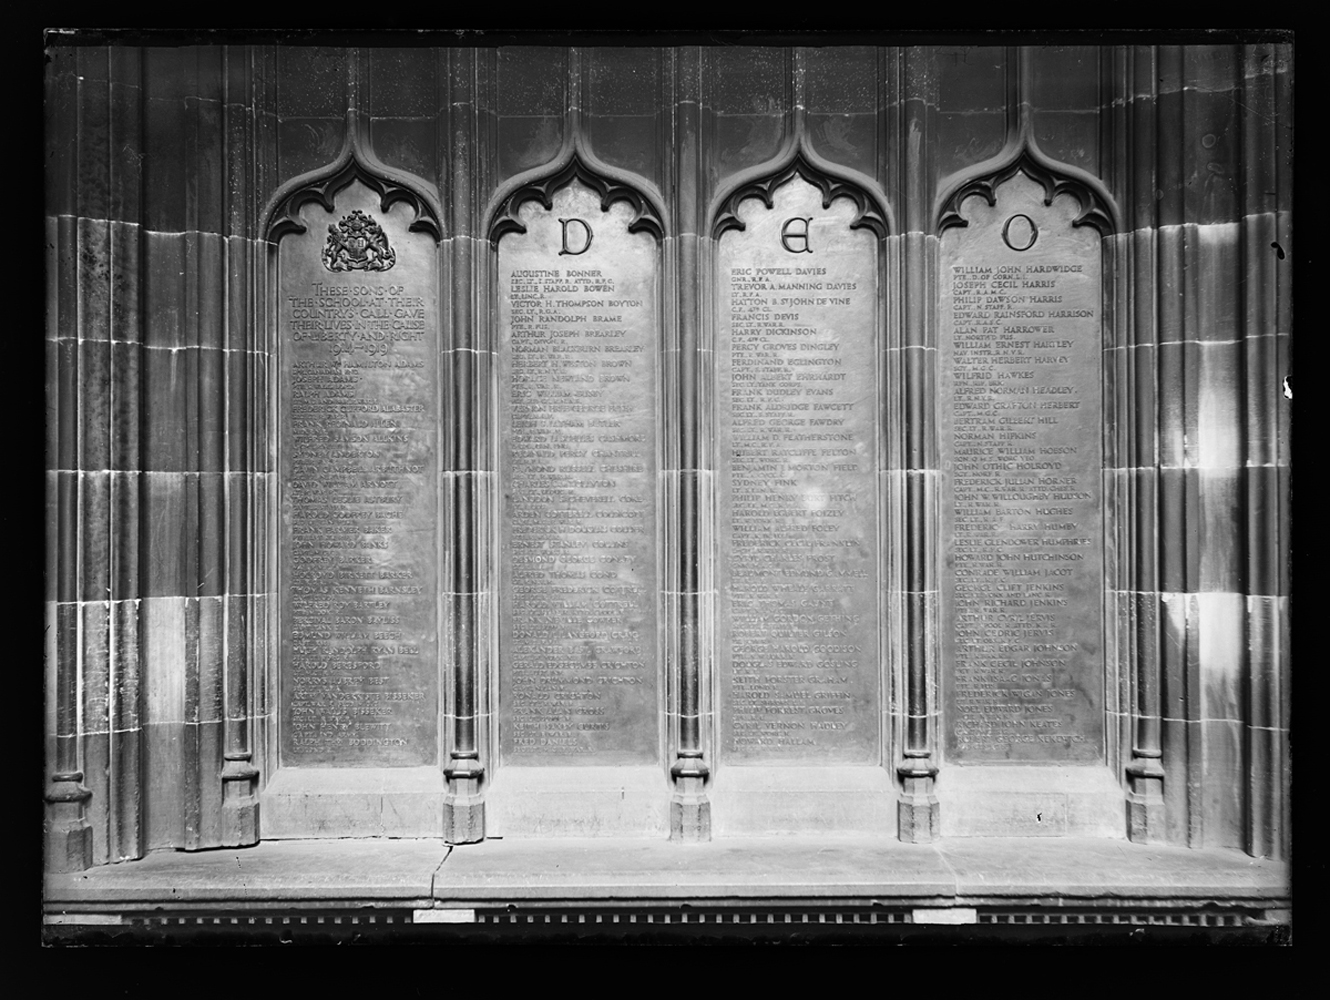 http://www.davidrowan.org/files/gimgs/54_ke-archive-large-plates---war-memorial-plaques-2.jpg